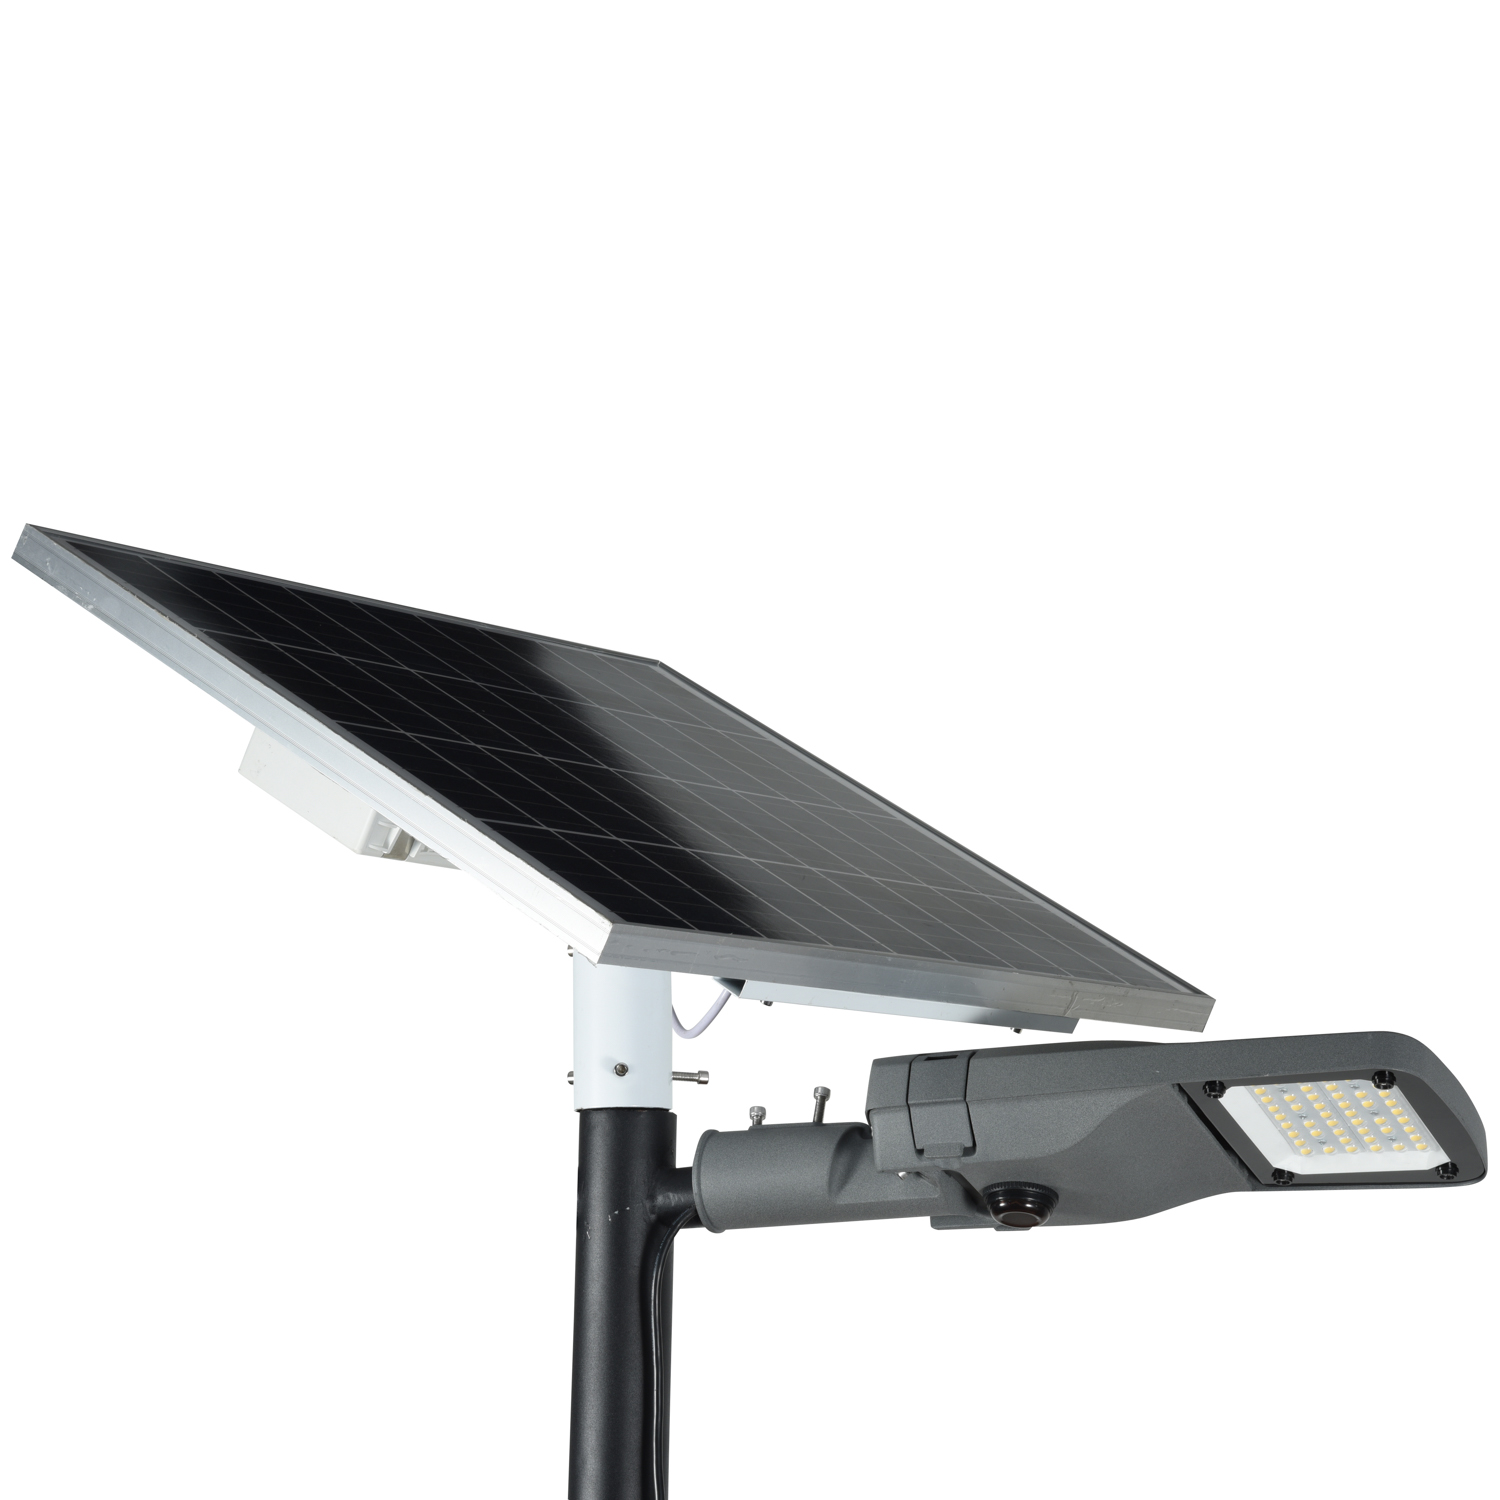 SUNLE Solar Street Light SLSR06